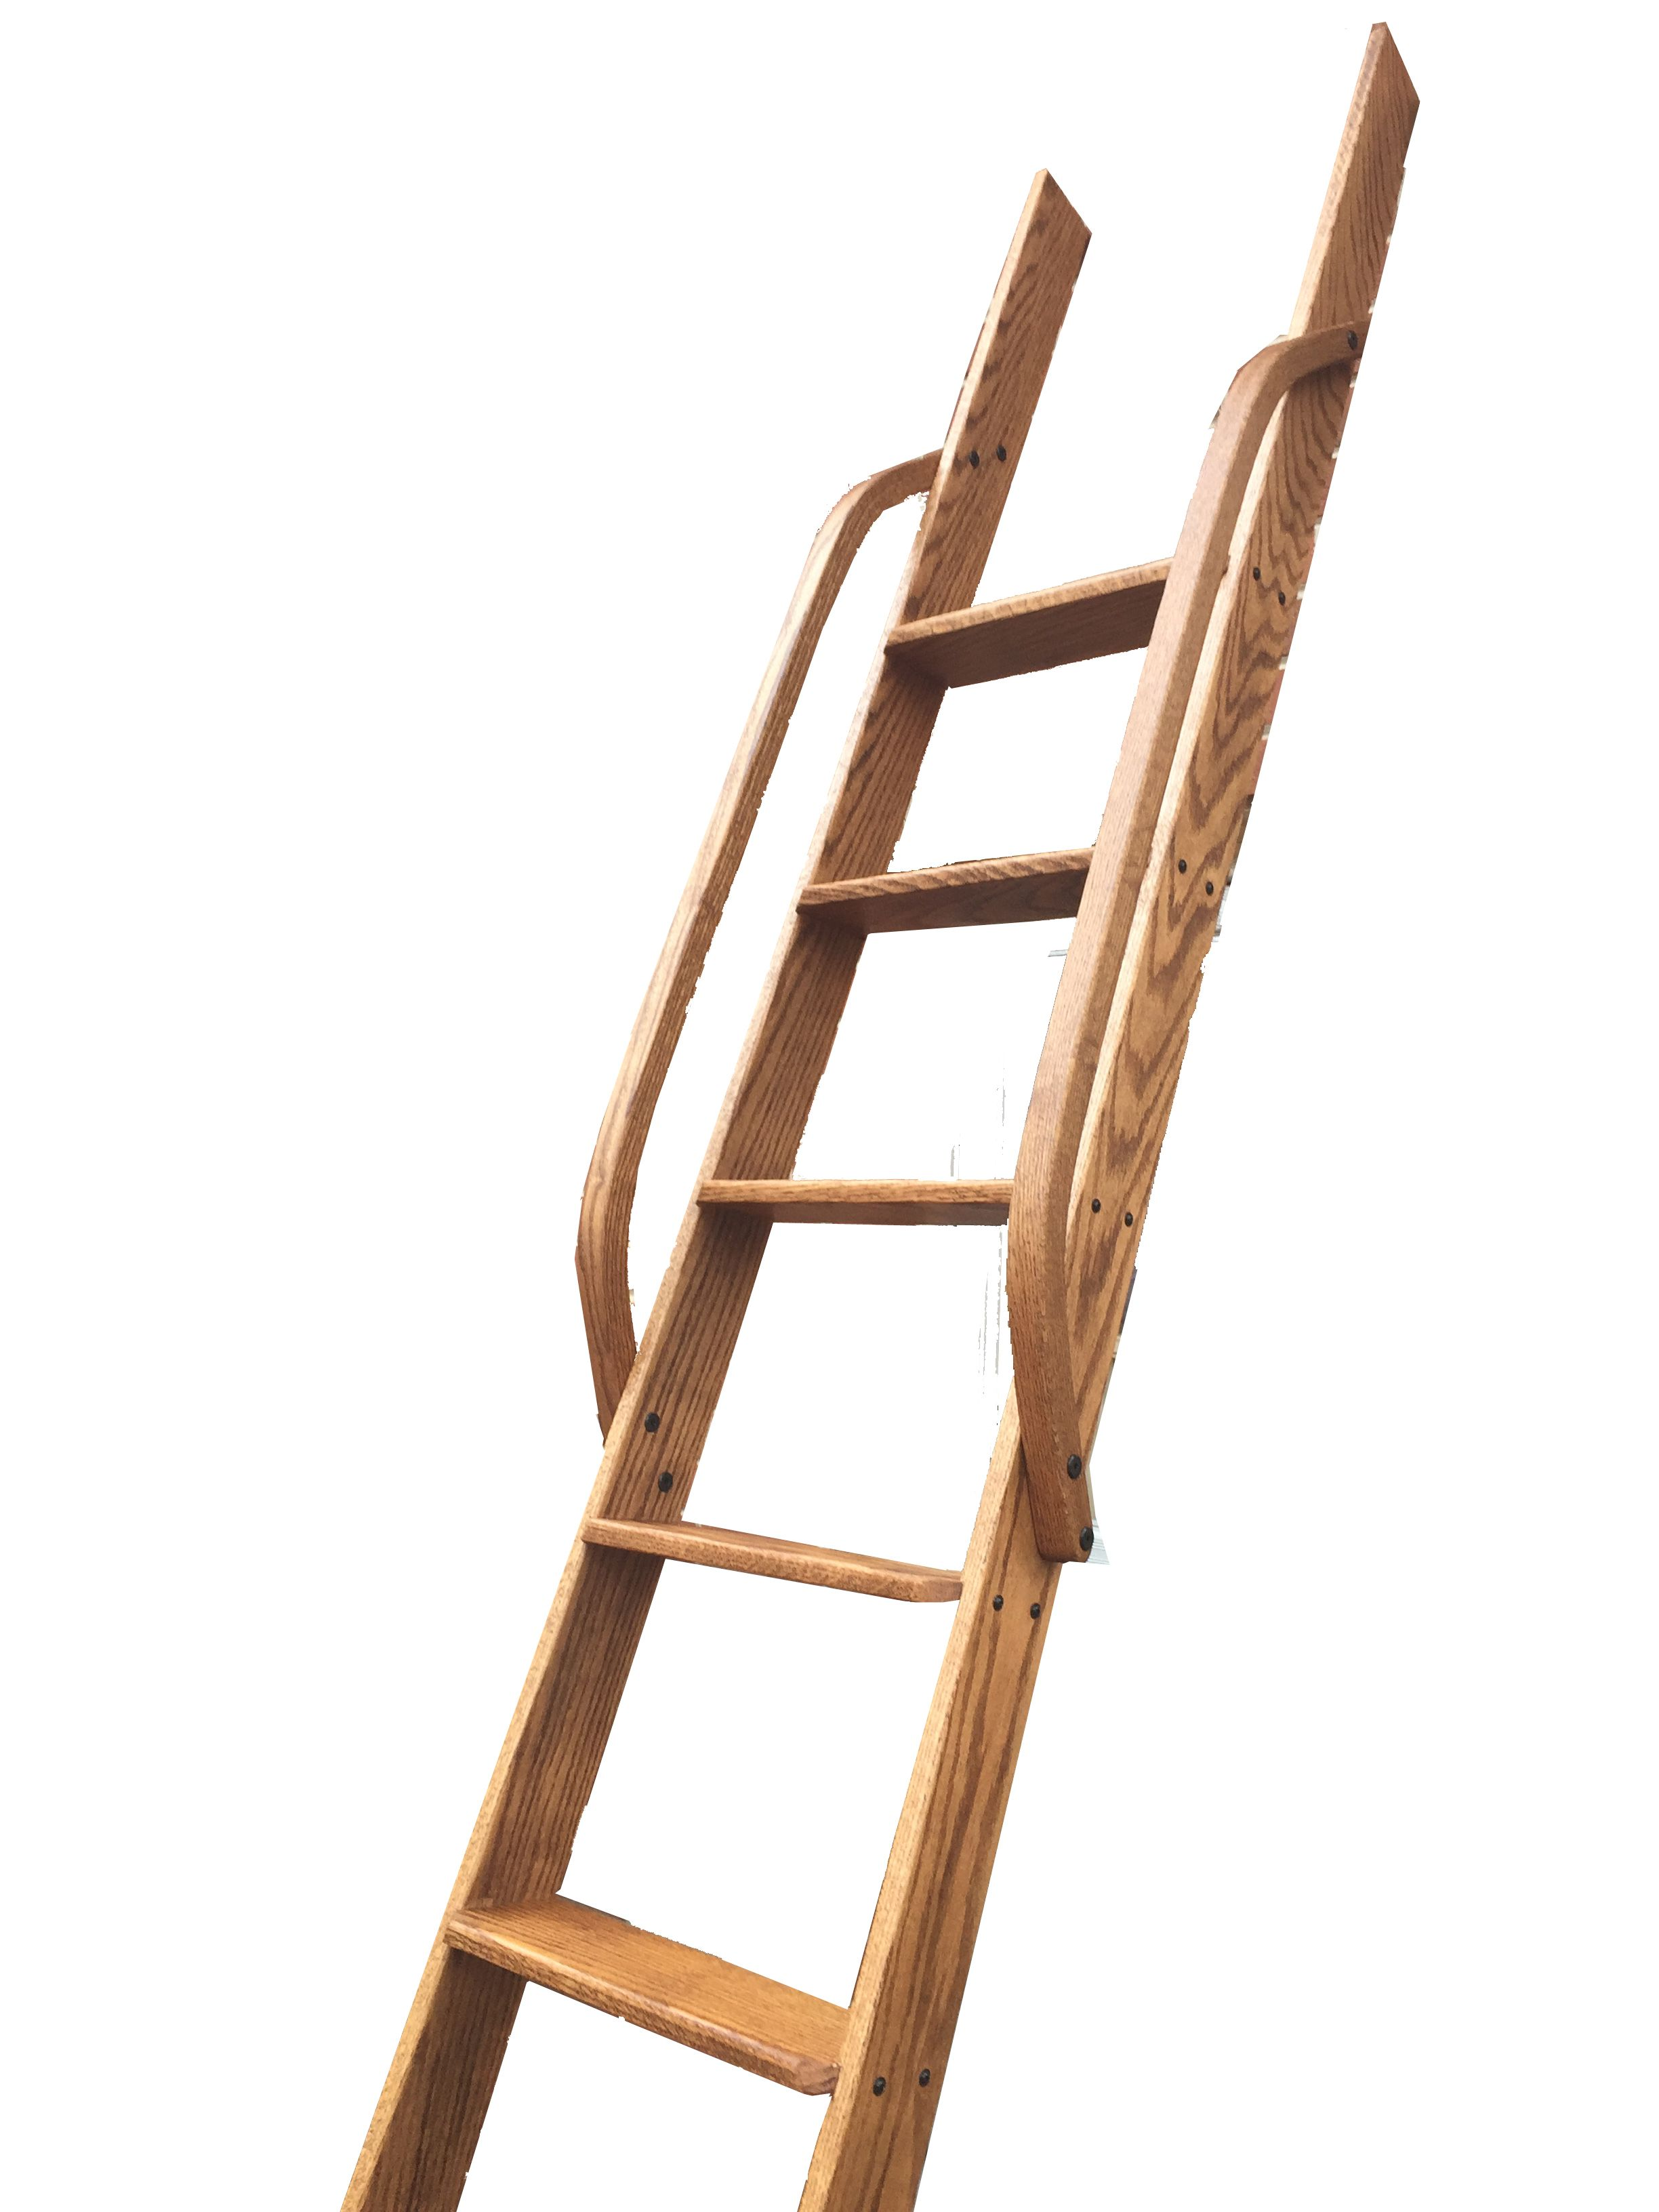 Wood Ladder Wooden Ladder Loft Ladder Interior Ladder Library Ladder Oak Stained Ladder Handmade Ladder Handcraf Wood Ladder Loft Ladder Library Ladder